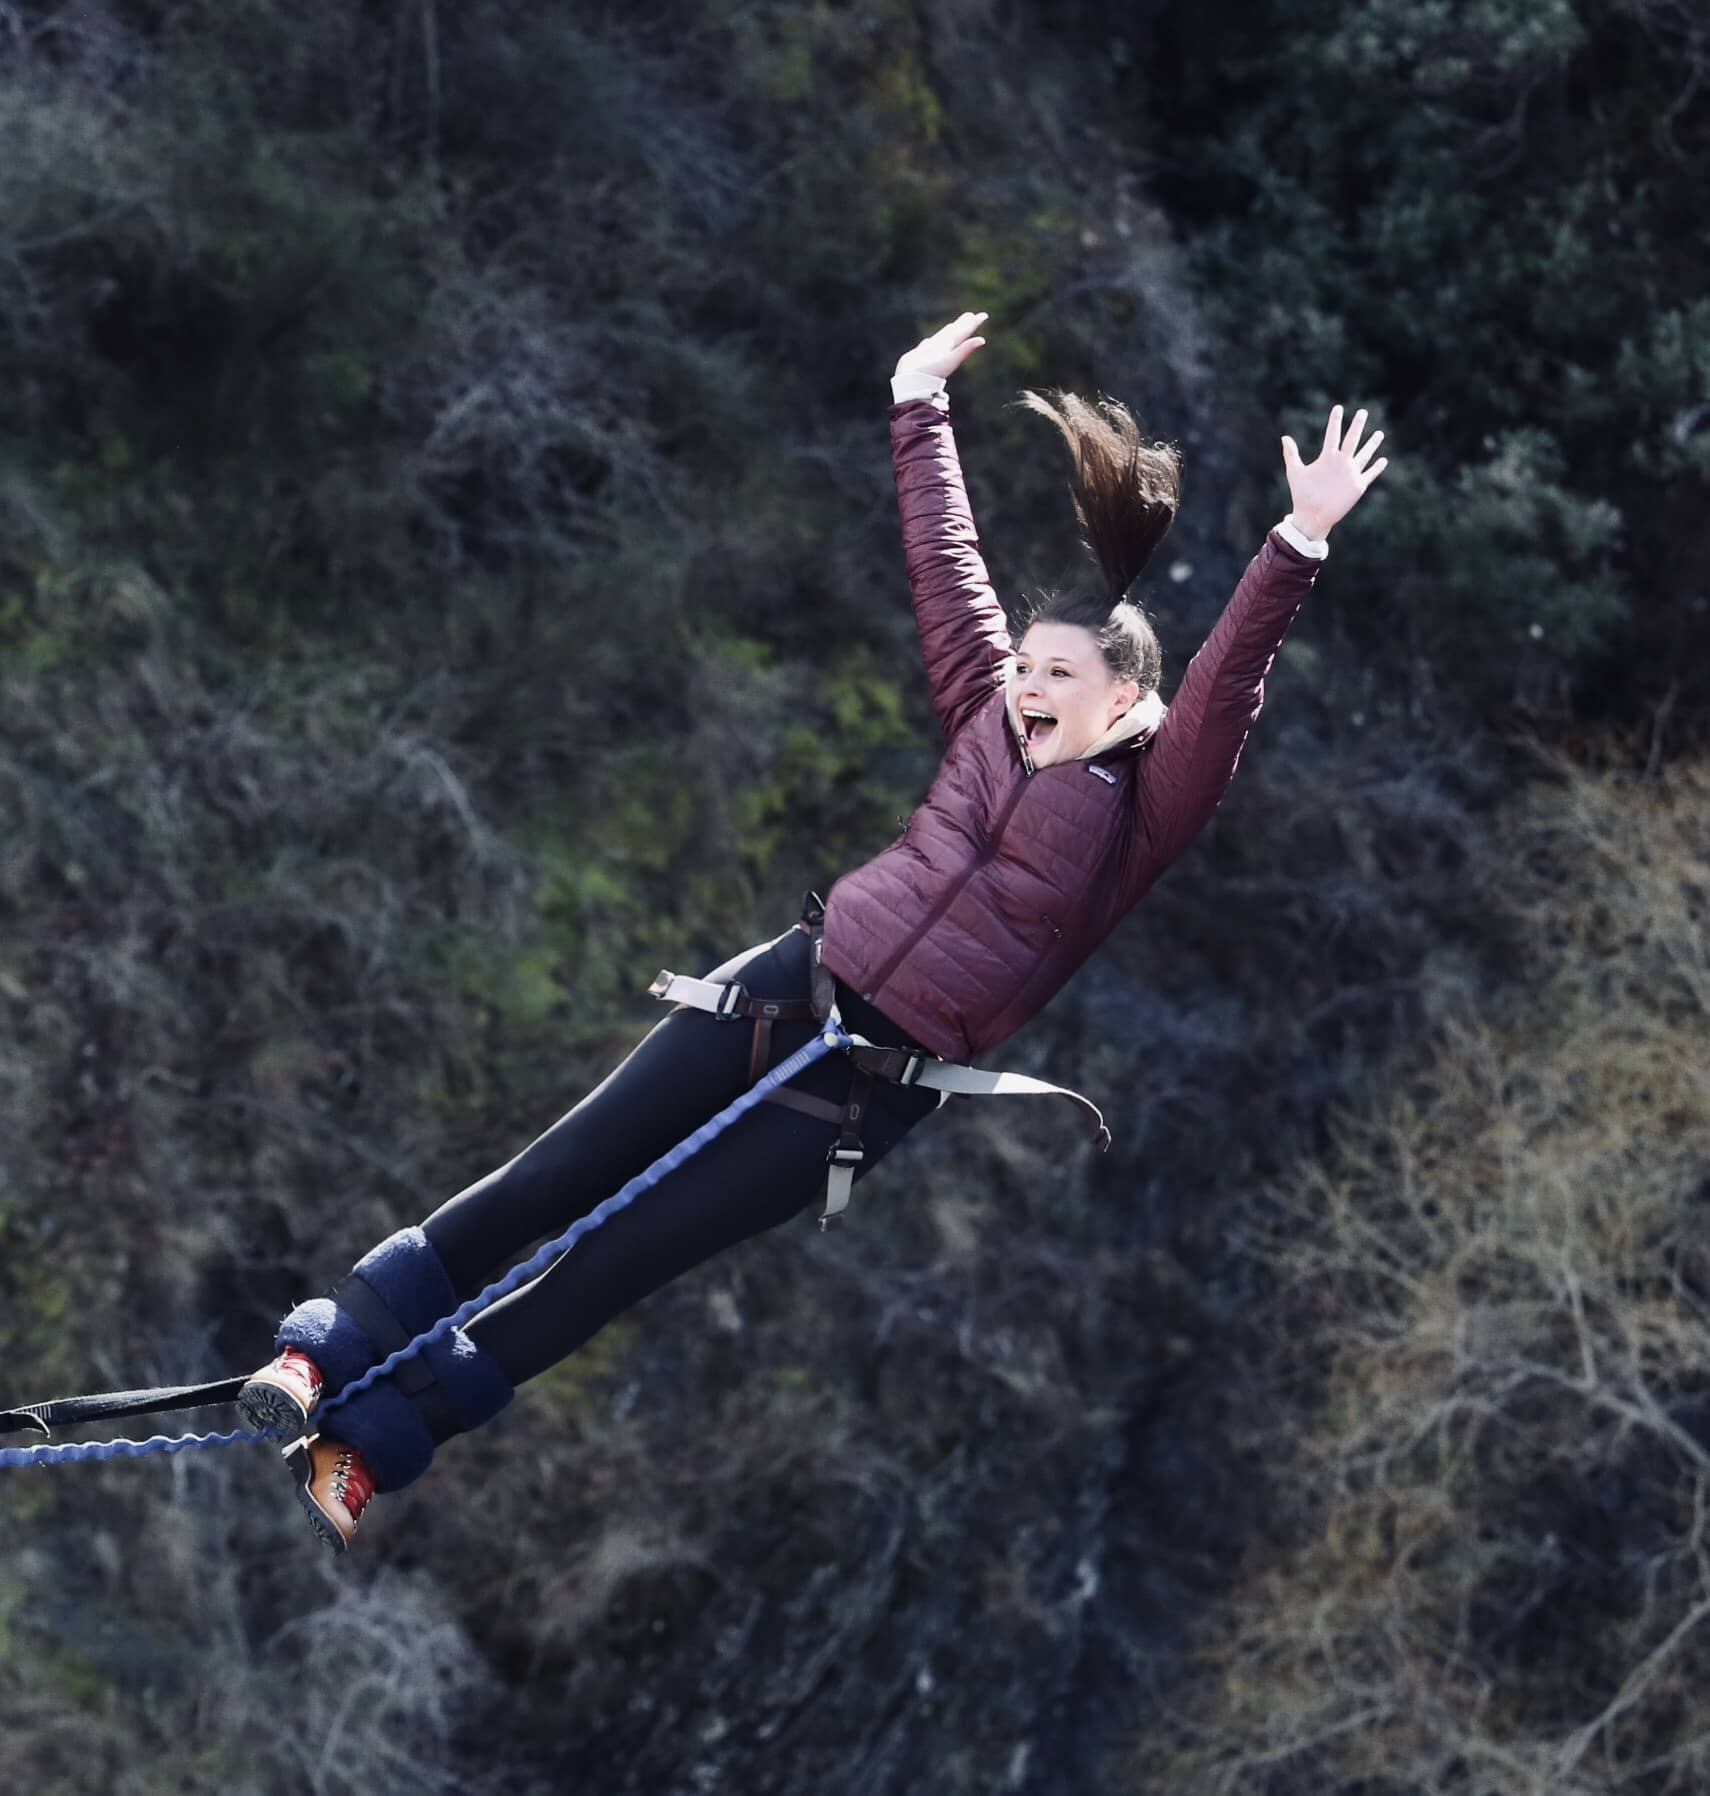 A woman bunny jumping with her arms stretching above her and a big smile on her face.